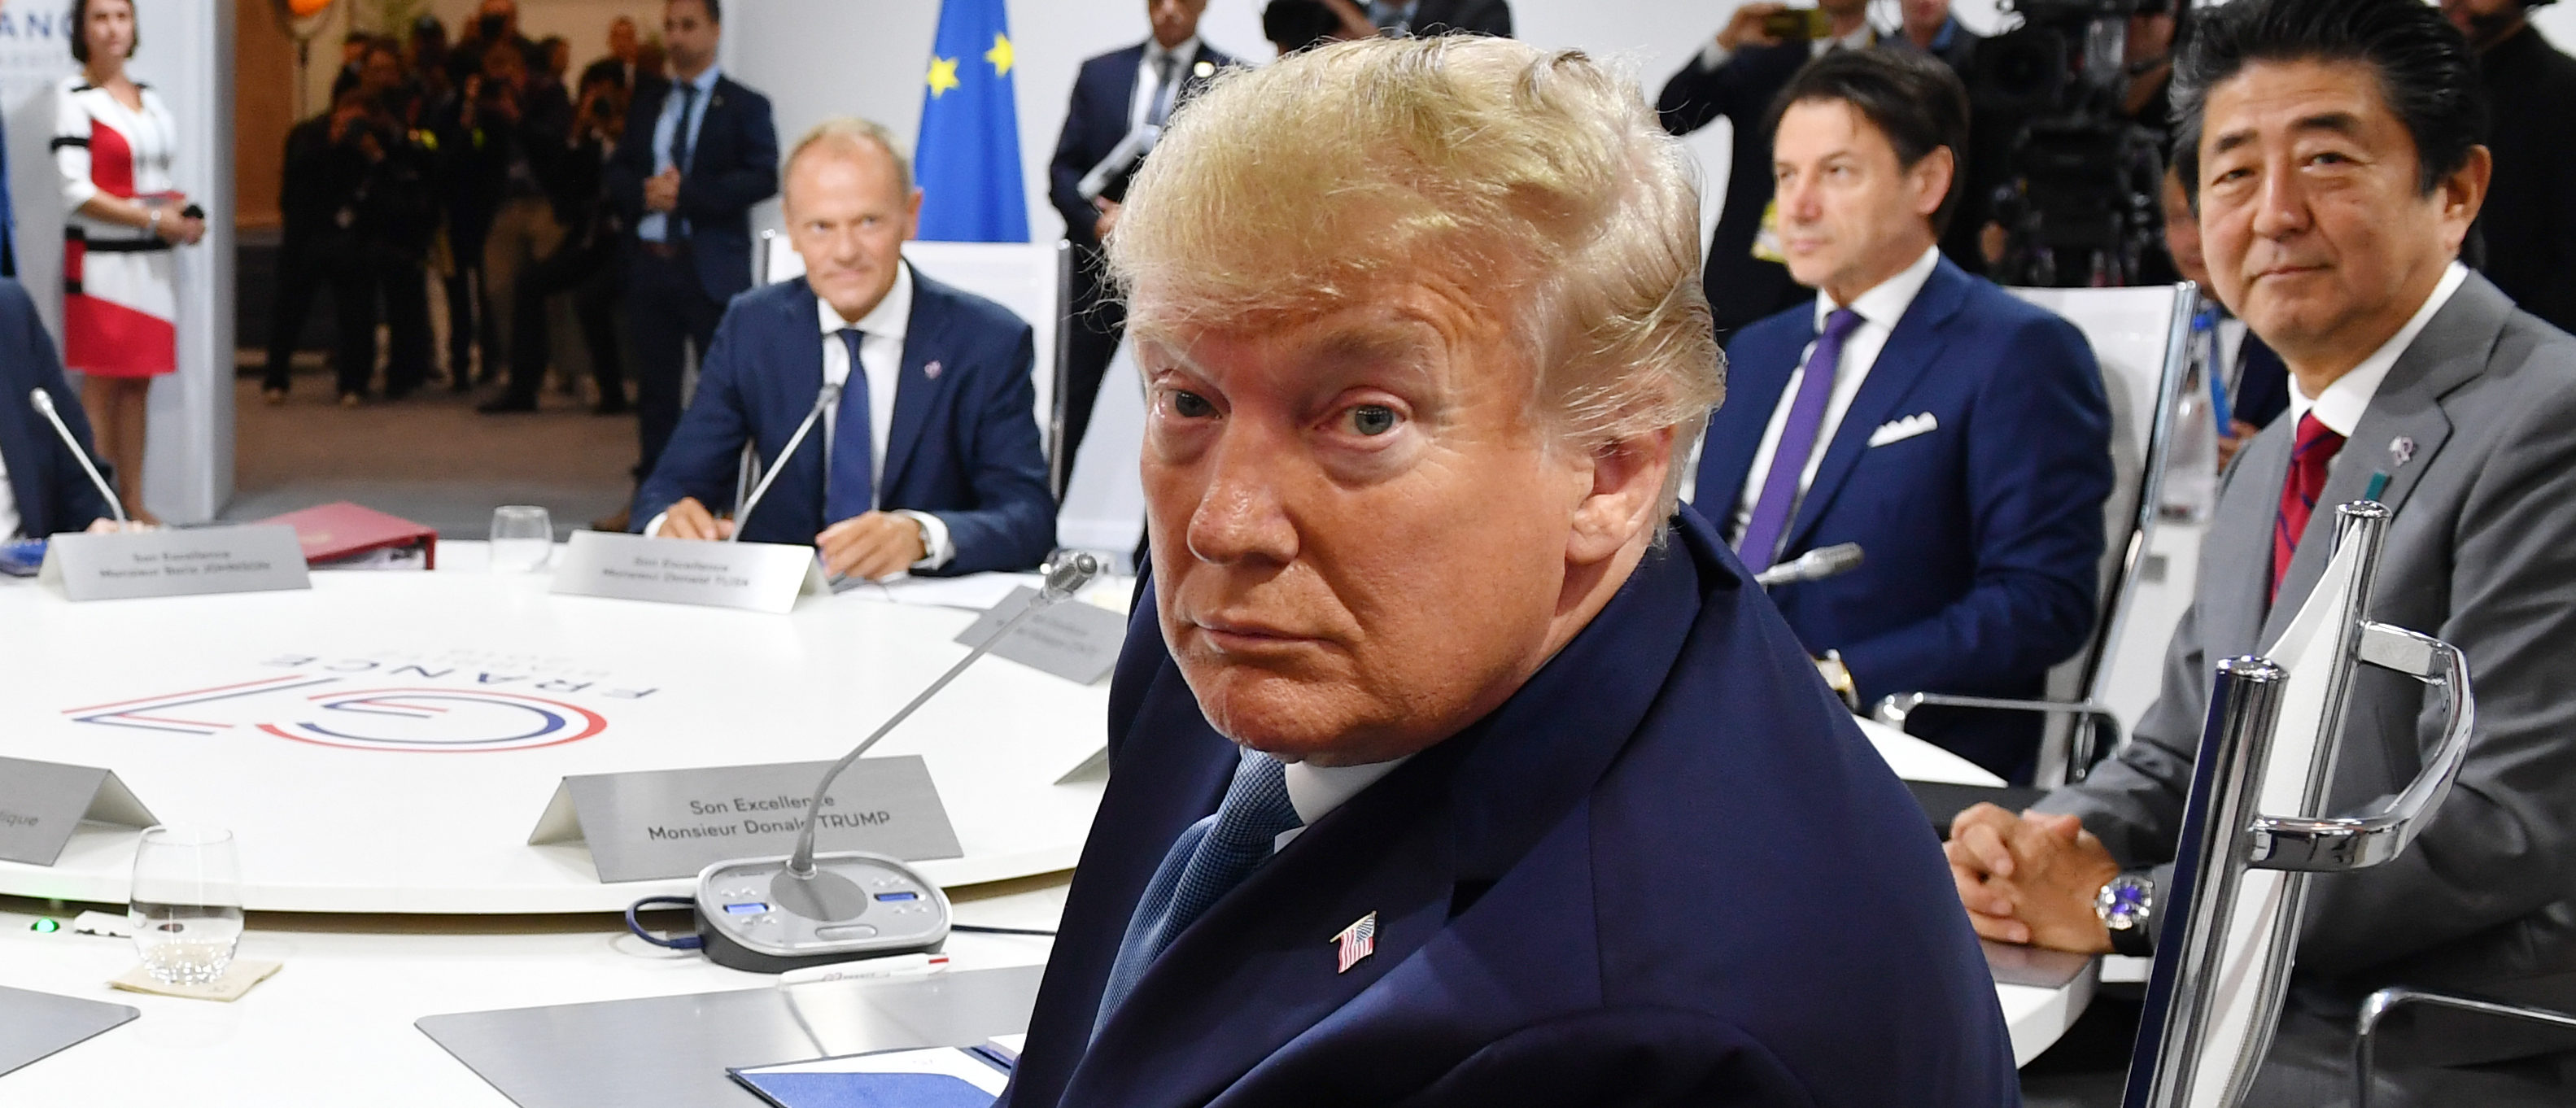 US President Donald Trump attends the first working session of the G7 Summit on August 25, 2019 in Biarritz, France. (Jeff J Mitchell - Pool /Getty Images)